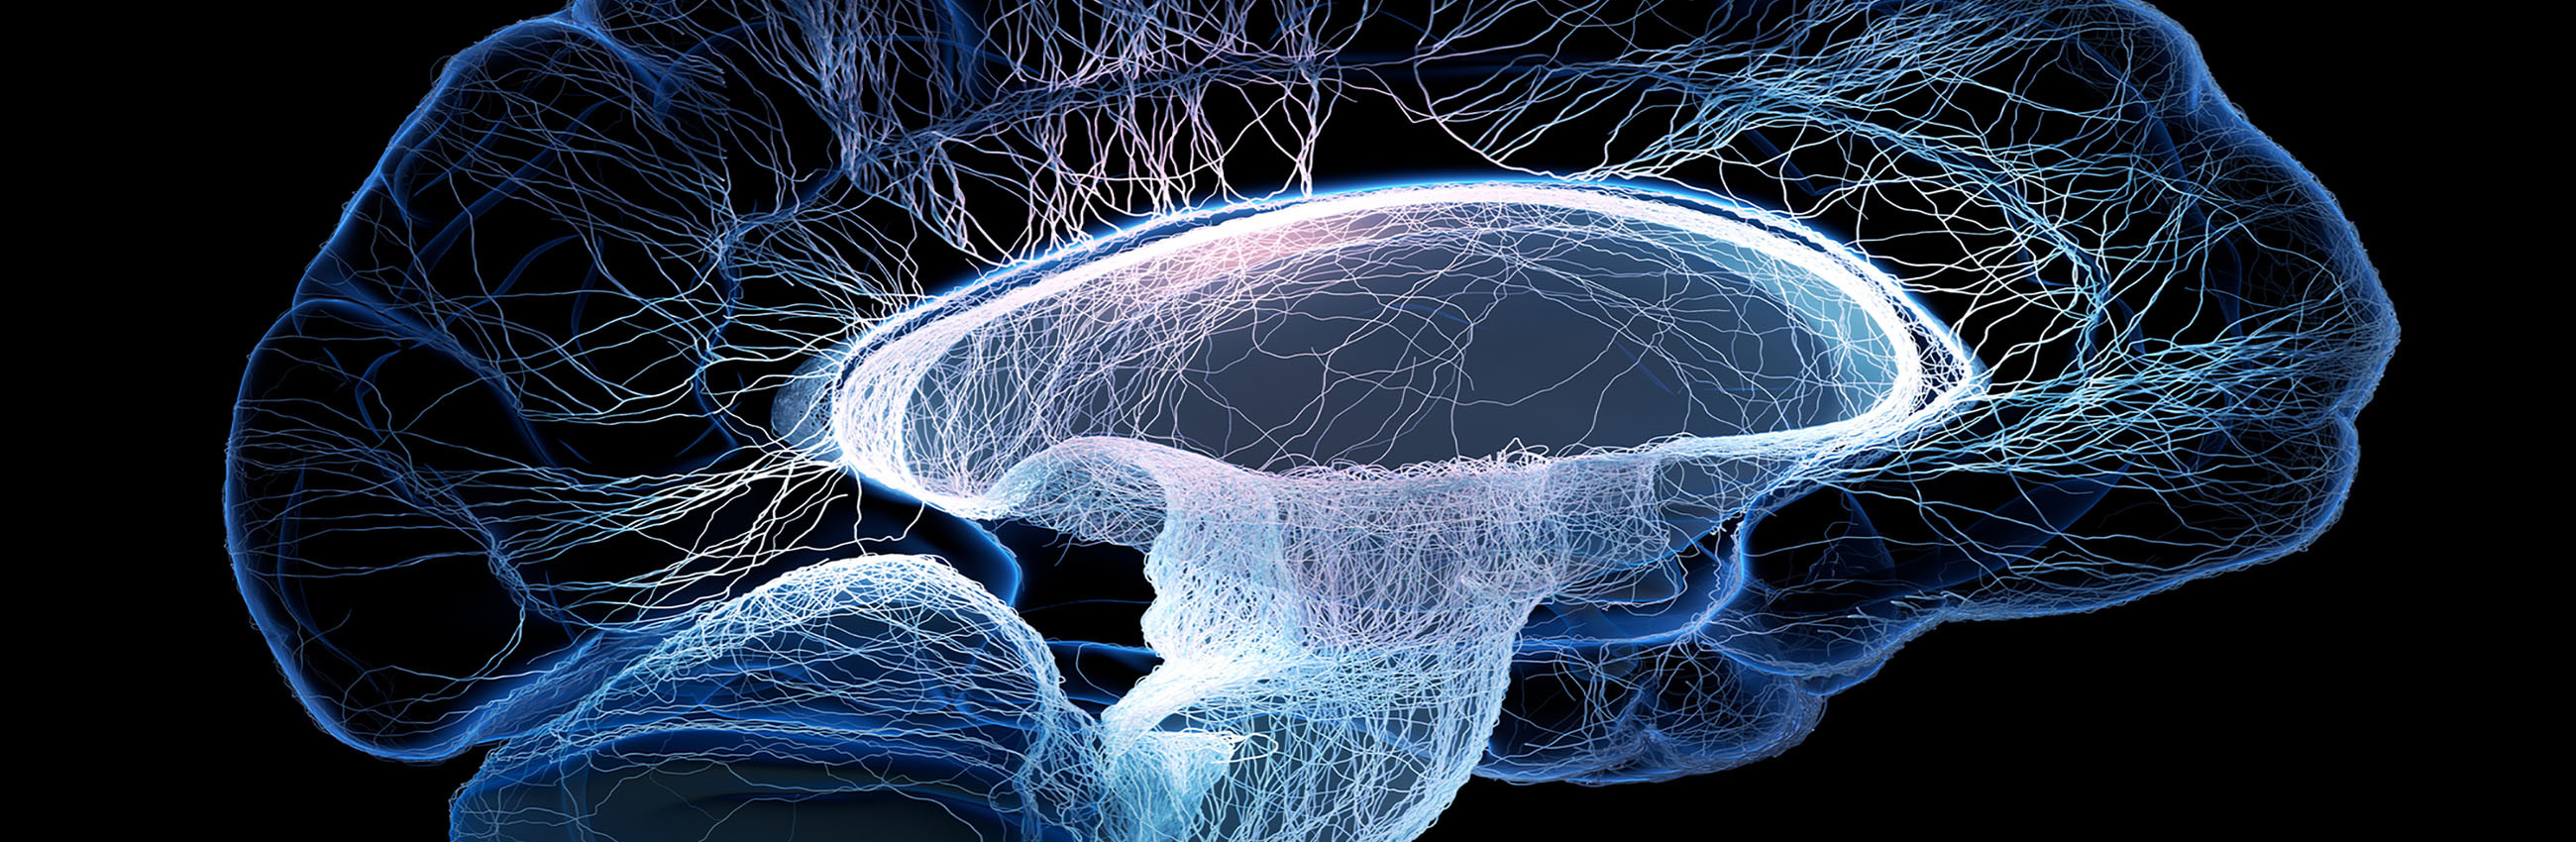 Human brain illustrated with interconnected small nerves